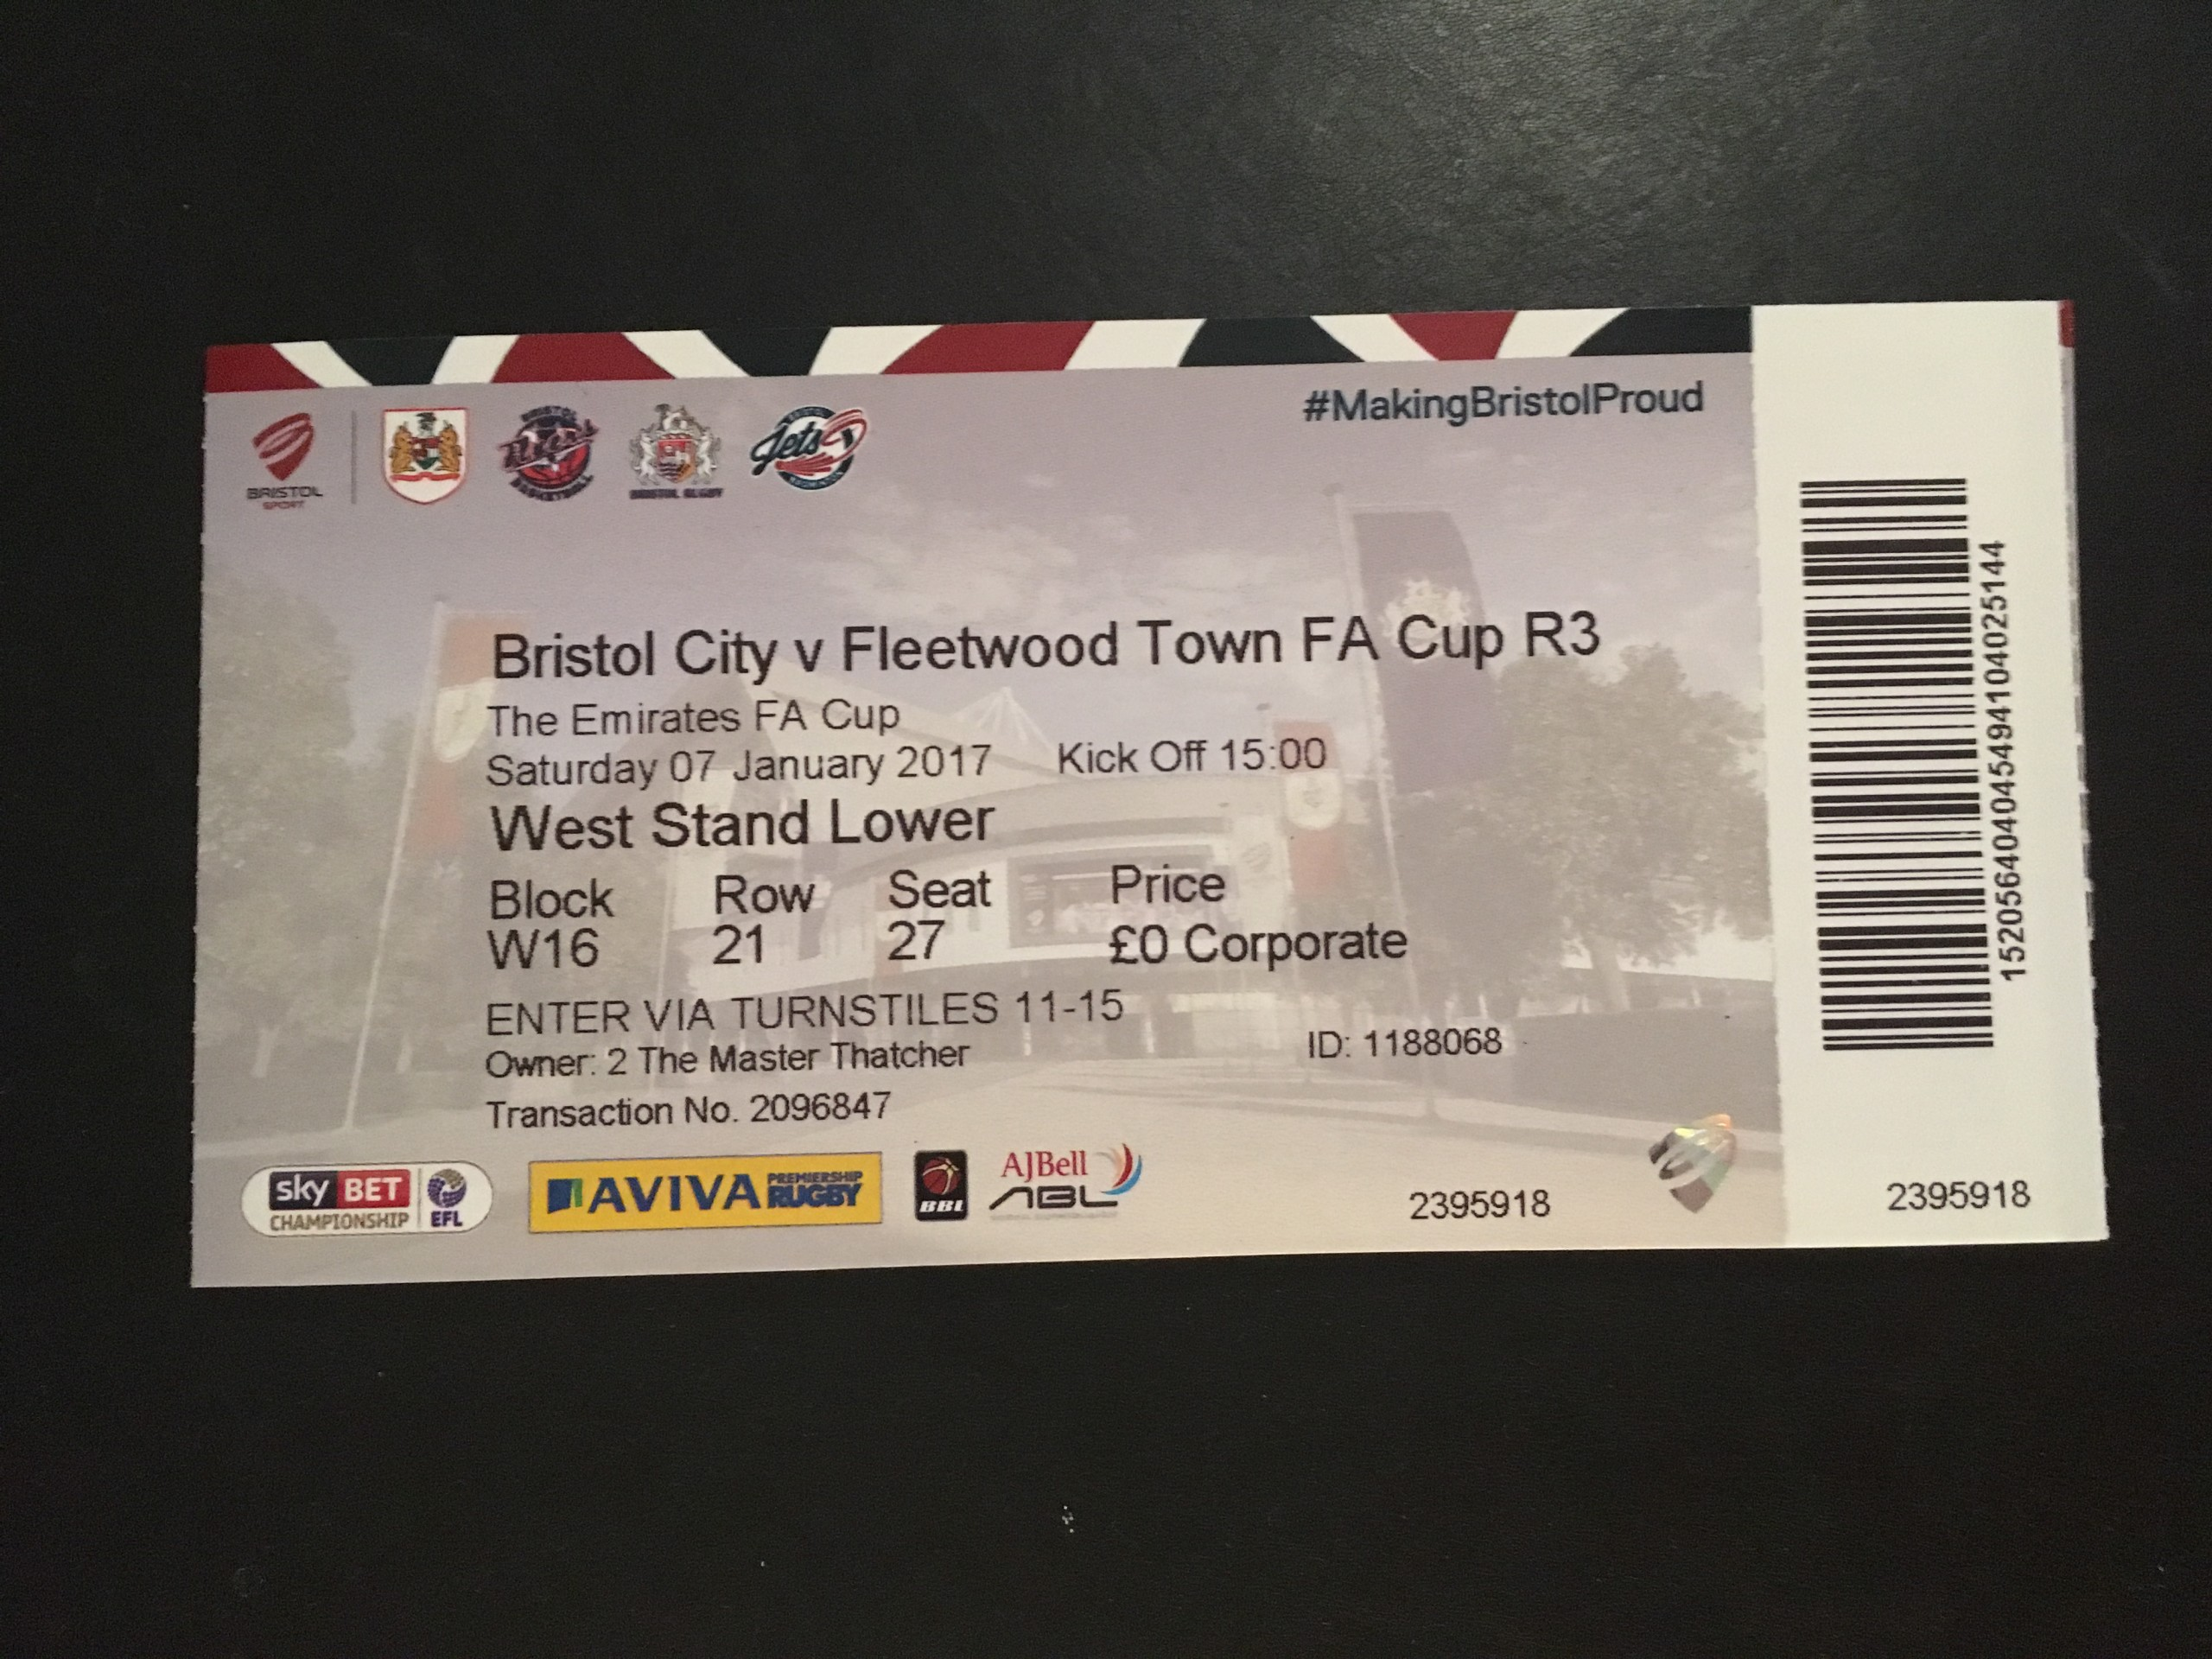 Bristol City v Fleetwood Town 07-01-2017 Ticket